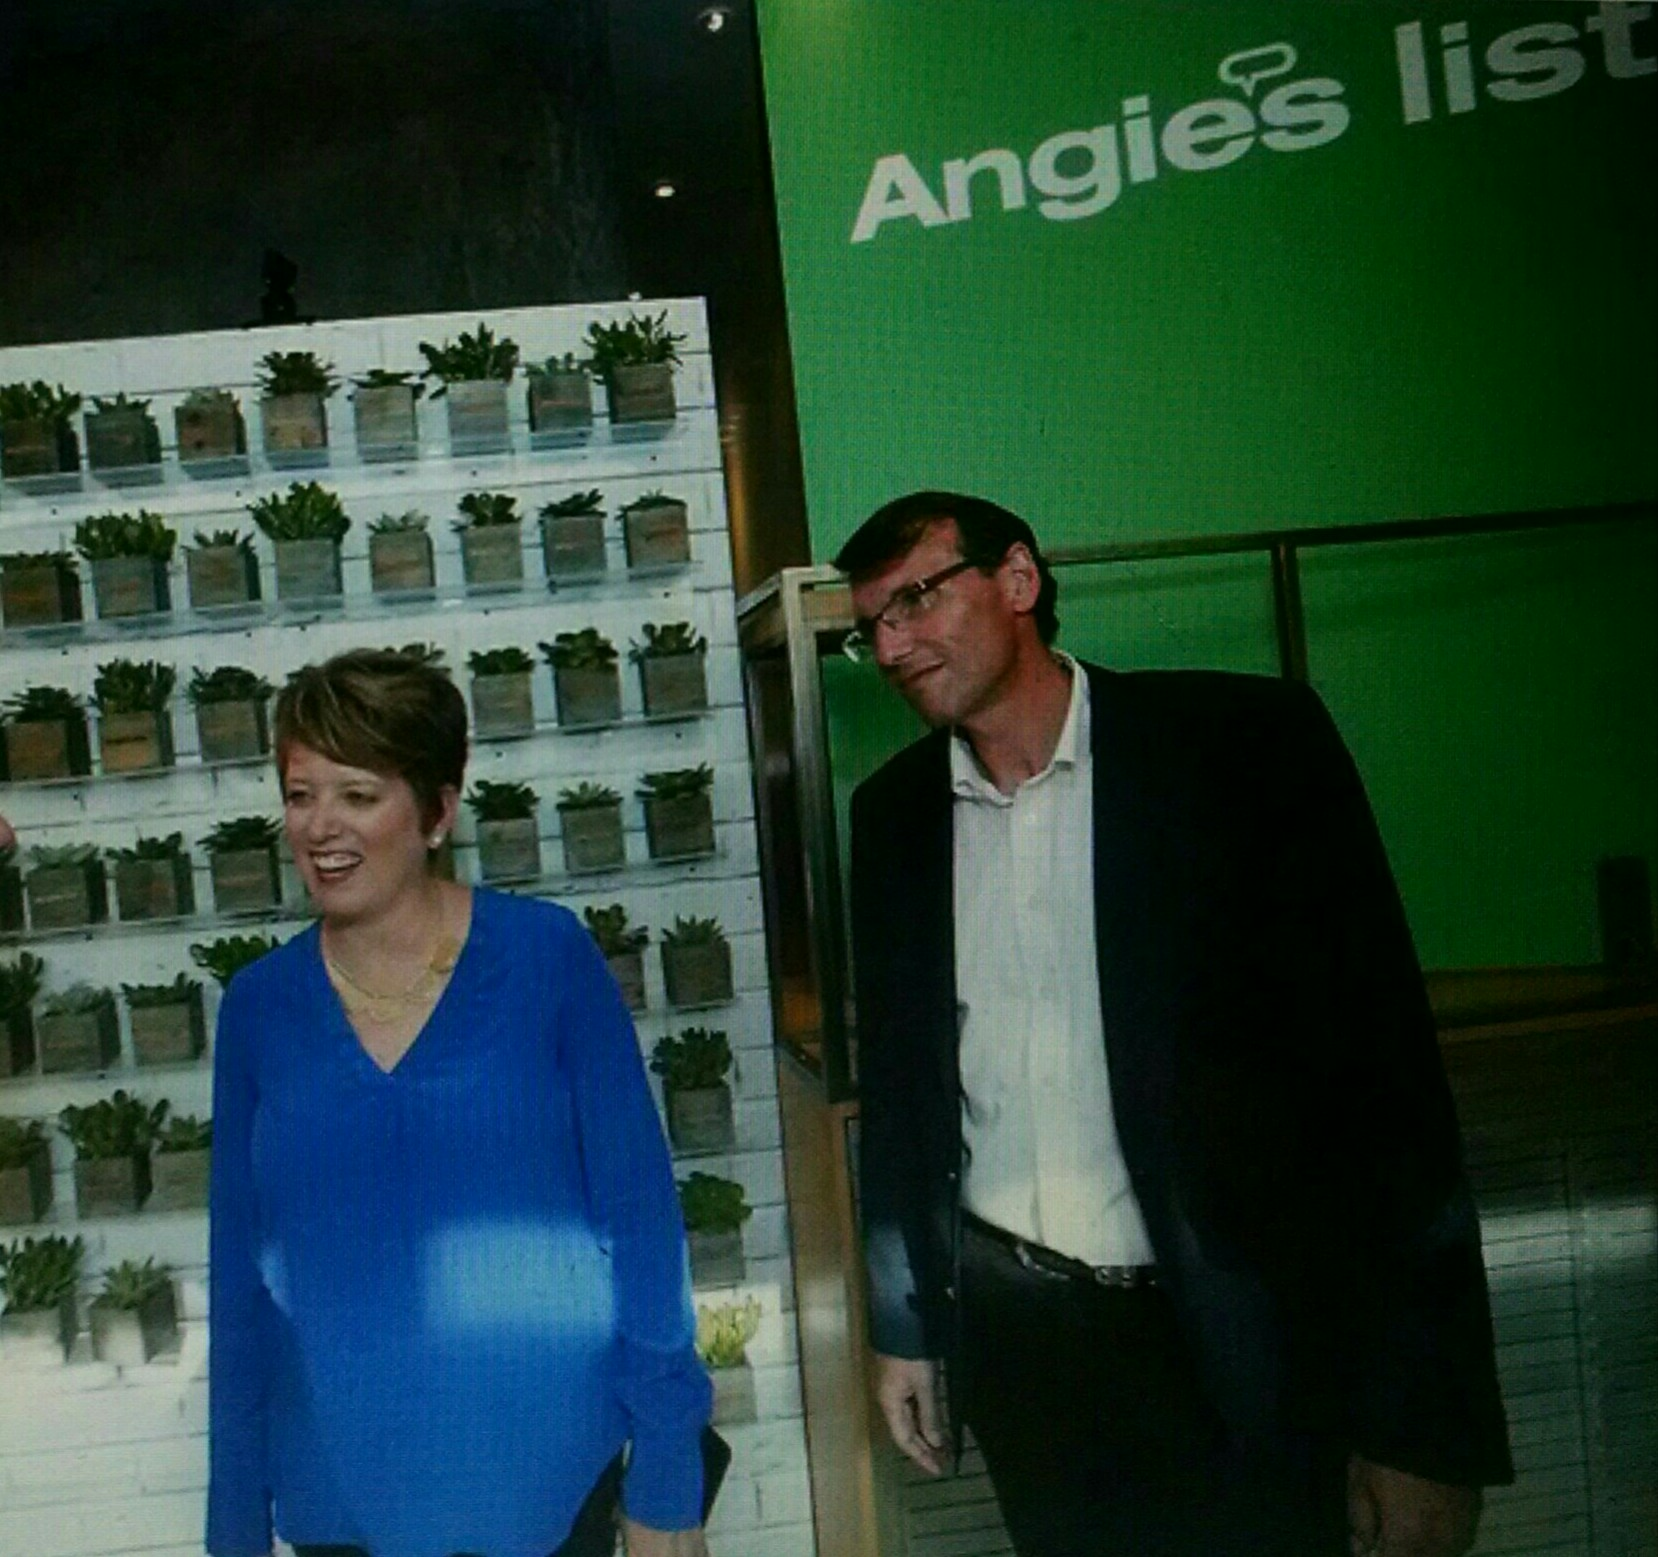 Angie's list is now free to its members